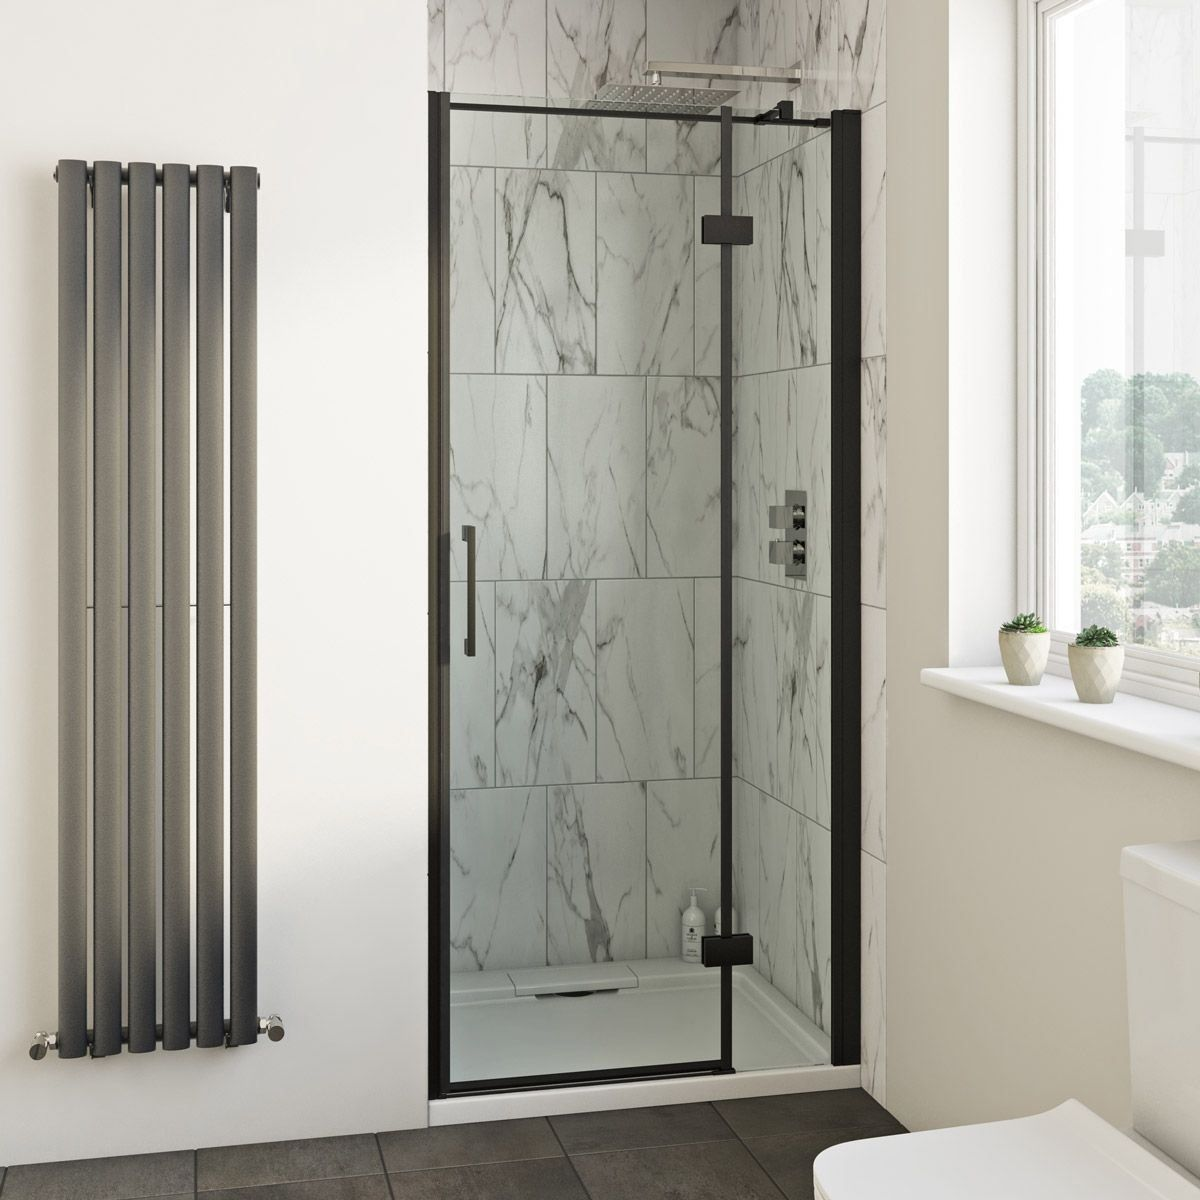 Mode Cooper Black Hinged Easy Clean Shower Door 1000 In 2020 Easy Clean Shower Clean Shower Doors Shower Doors